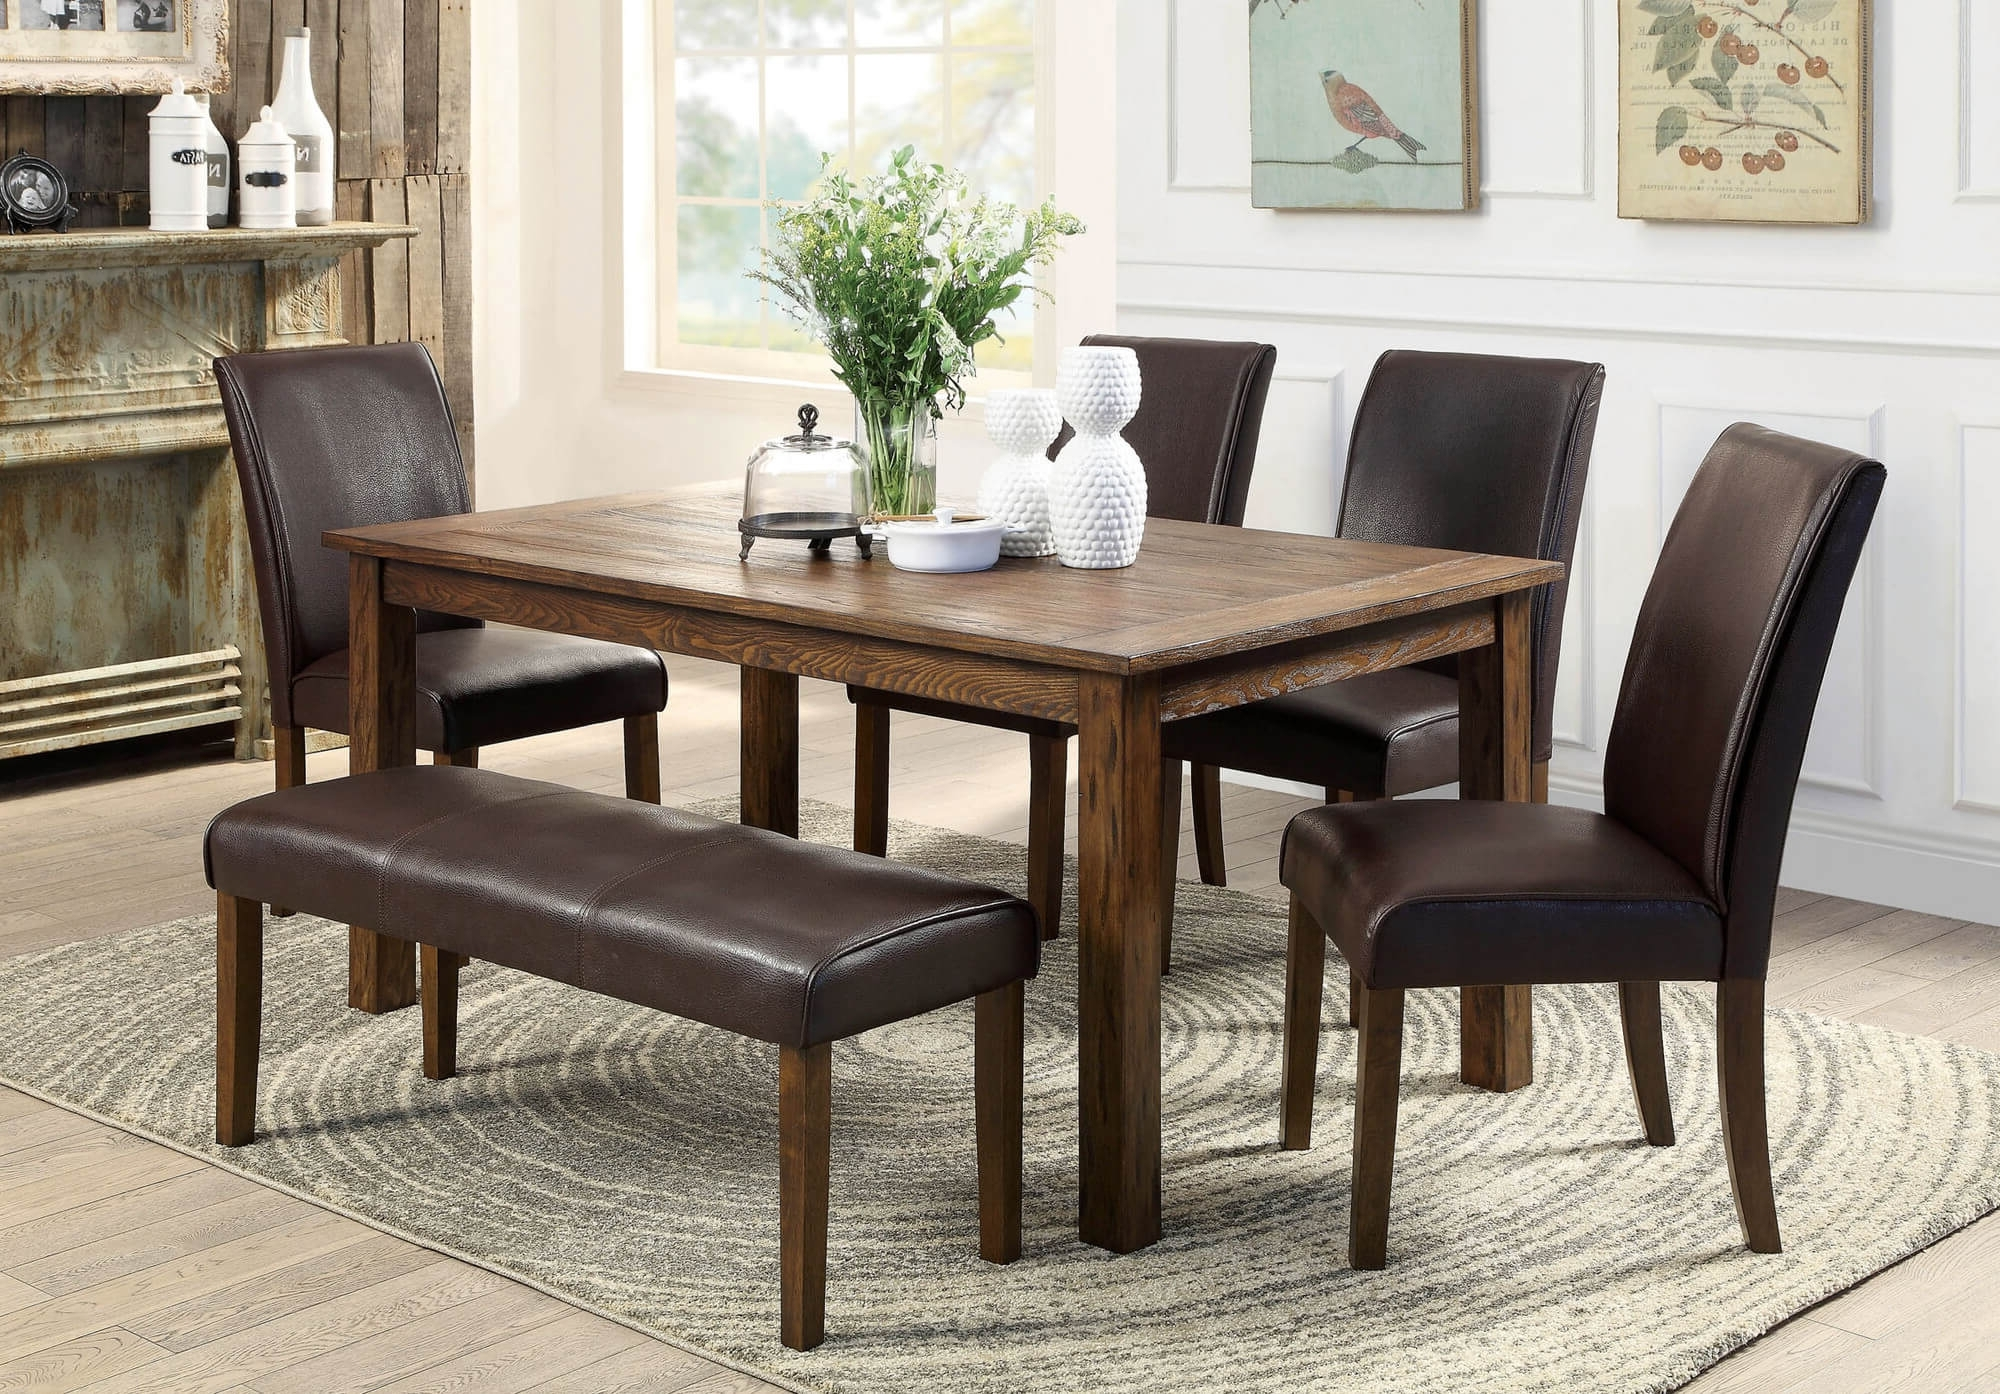 Best And Newest Small Dining Tables And Bench Sets Inside 26 Dining Room Sets (Big And Small) With Bench Seating (2018) (View 2 of 25)